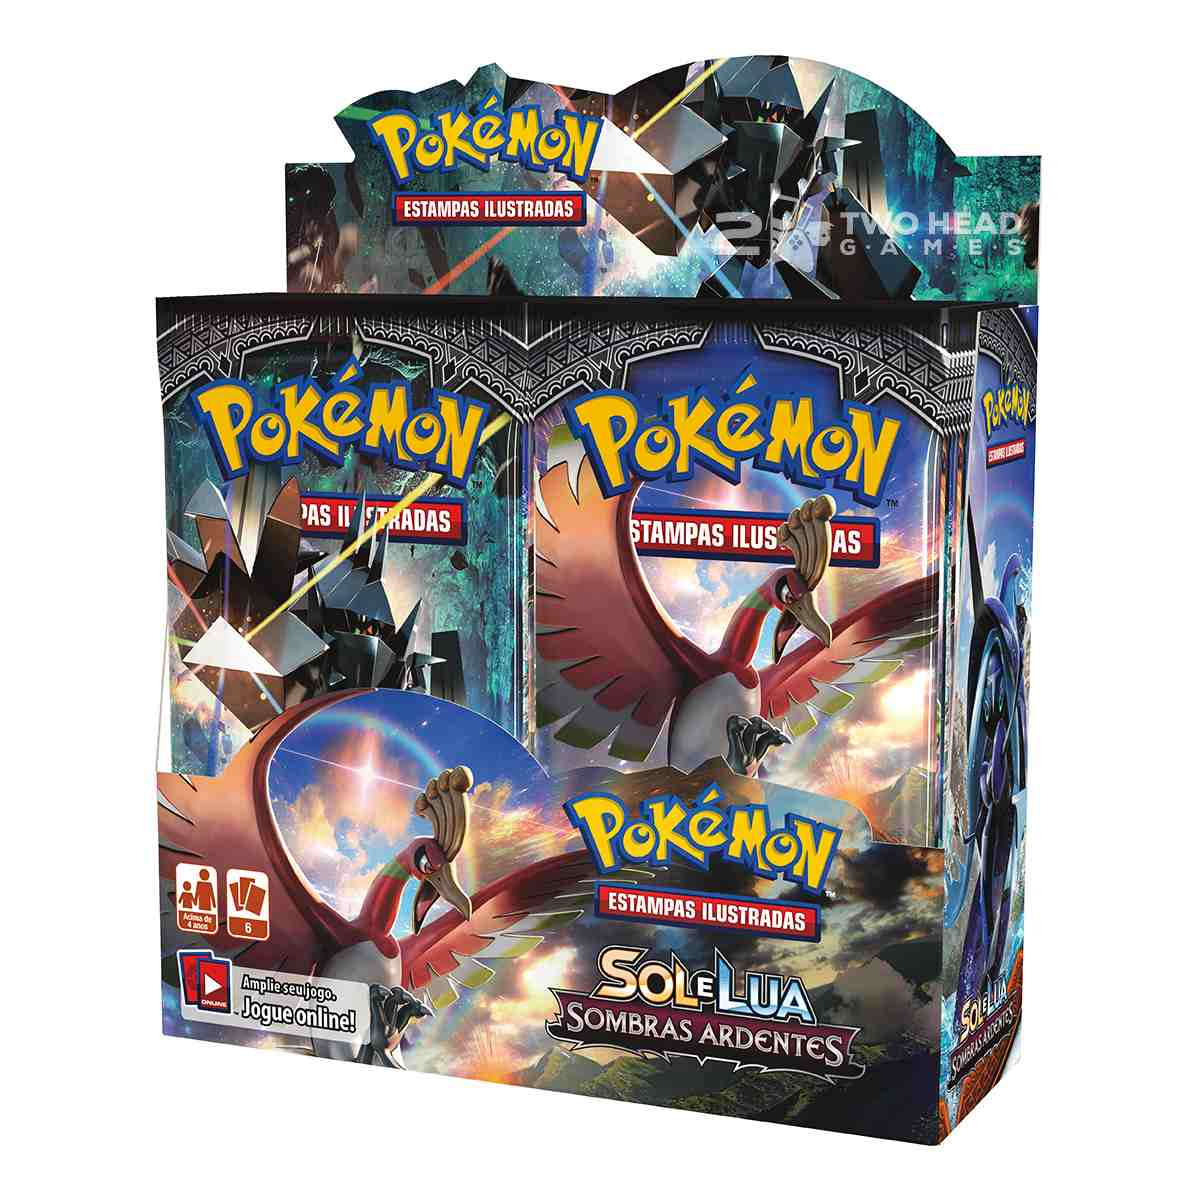 Pokemon Box Booster Sol e Lua Sombras Ardentes